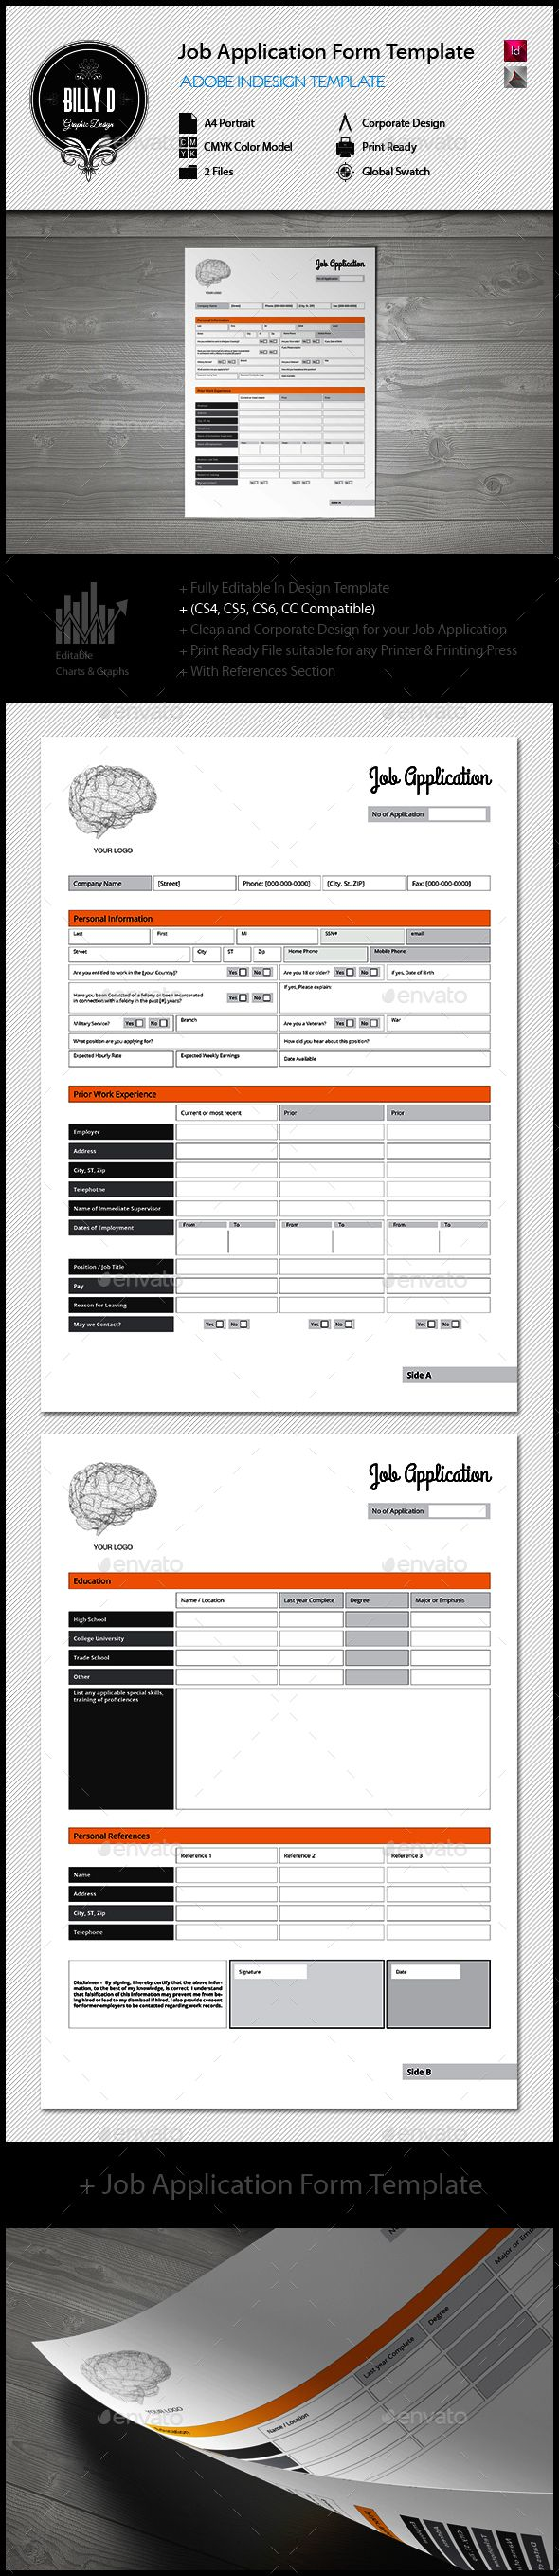 Job Application Form Template — InDesign INDD #a4 #job template • Available here → https://graphicriver.net/item/job-application-form-template/12998522?ref=pxcr